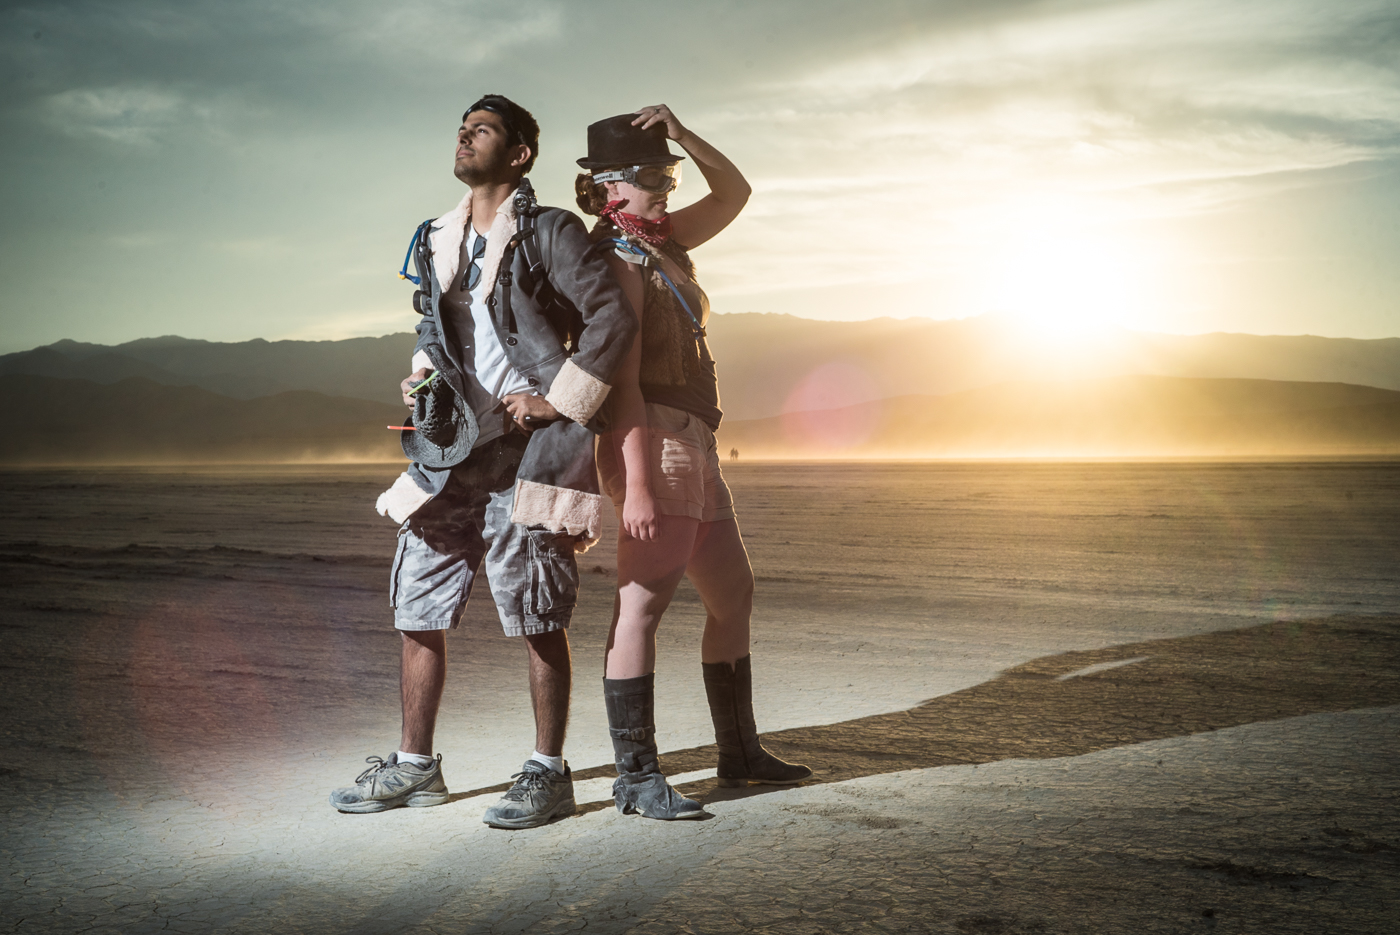 Burning Man 2014 sunset portrait couples photos on northtosouth.us